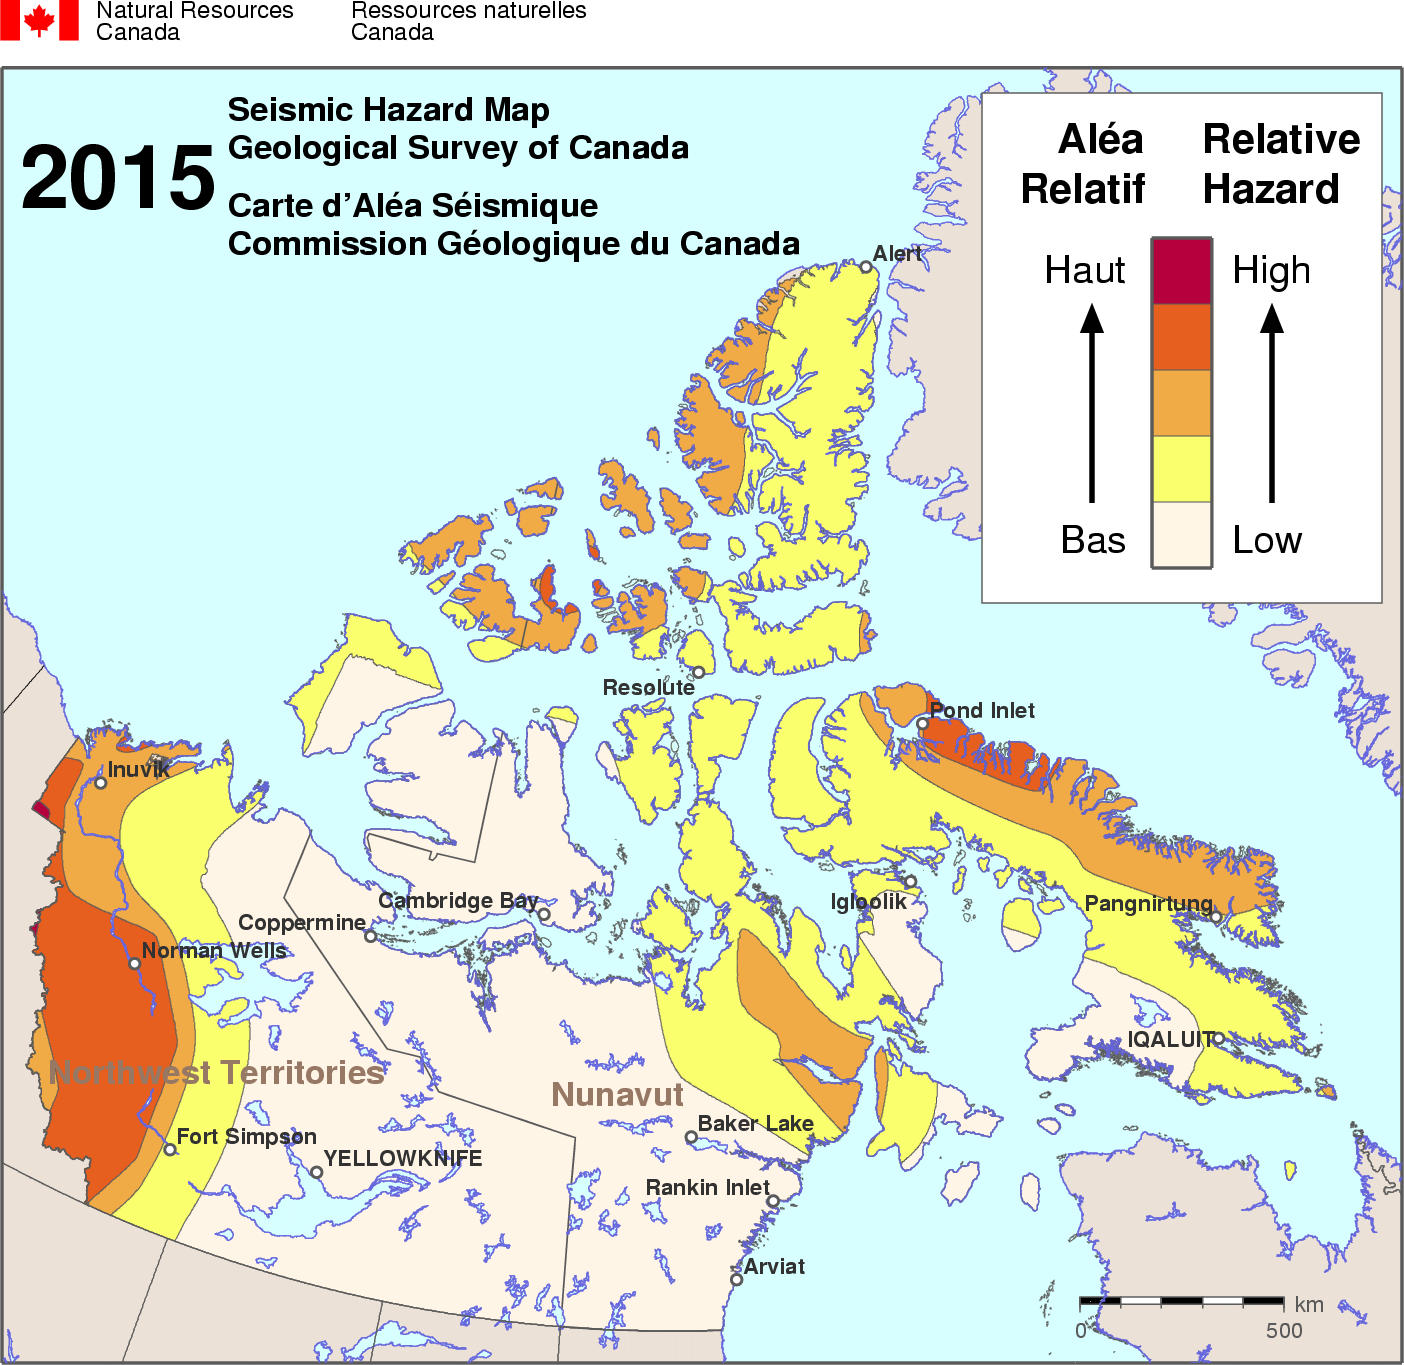 Map Of Canada Yellowknife.Simplified Seismic Hazard Map For Canada The Provinces And Territories